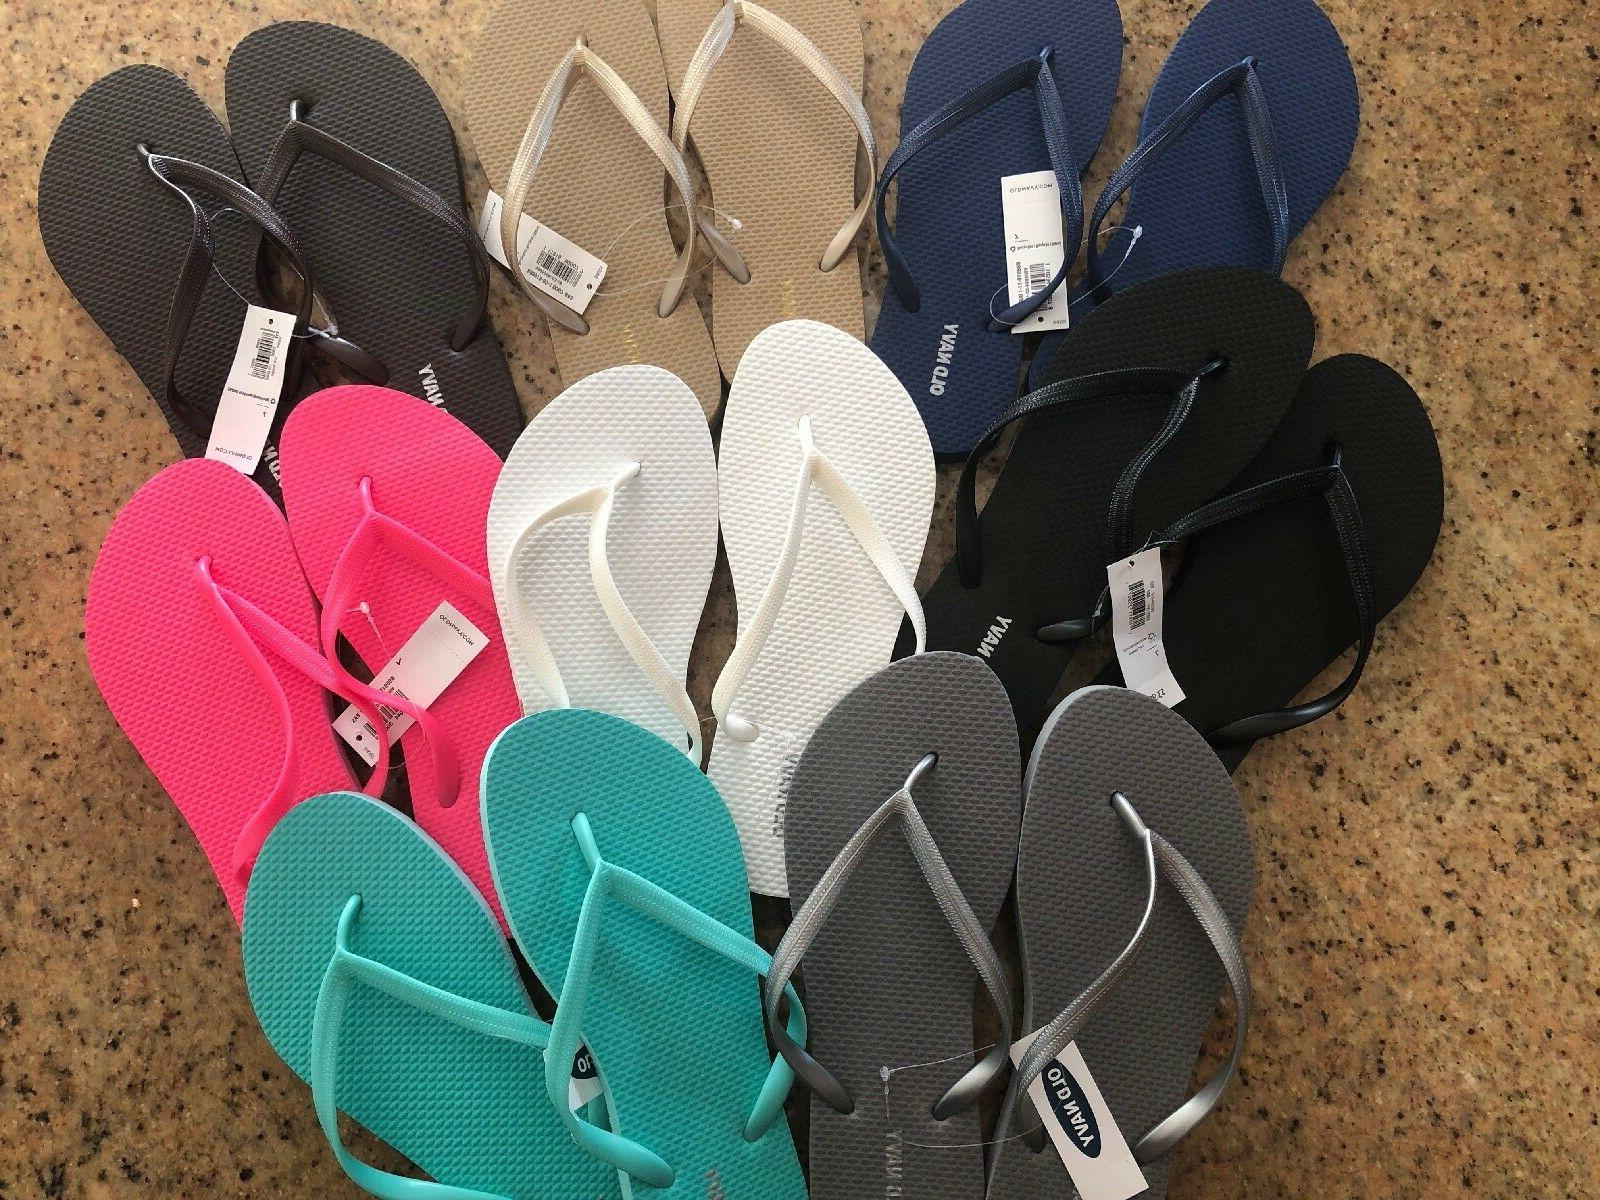 womens flip flops assorted colors and sizes